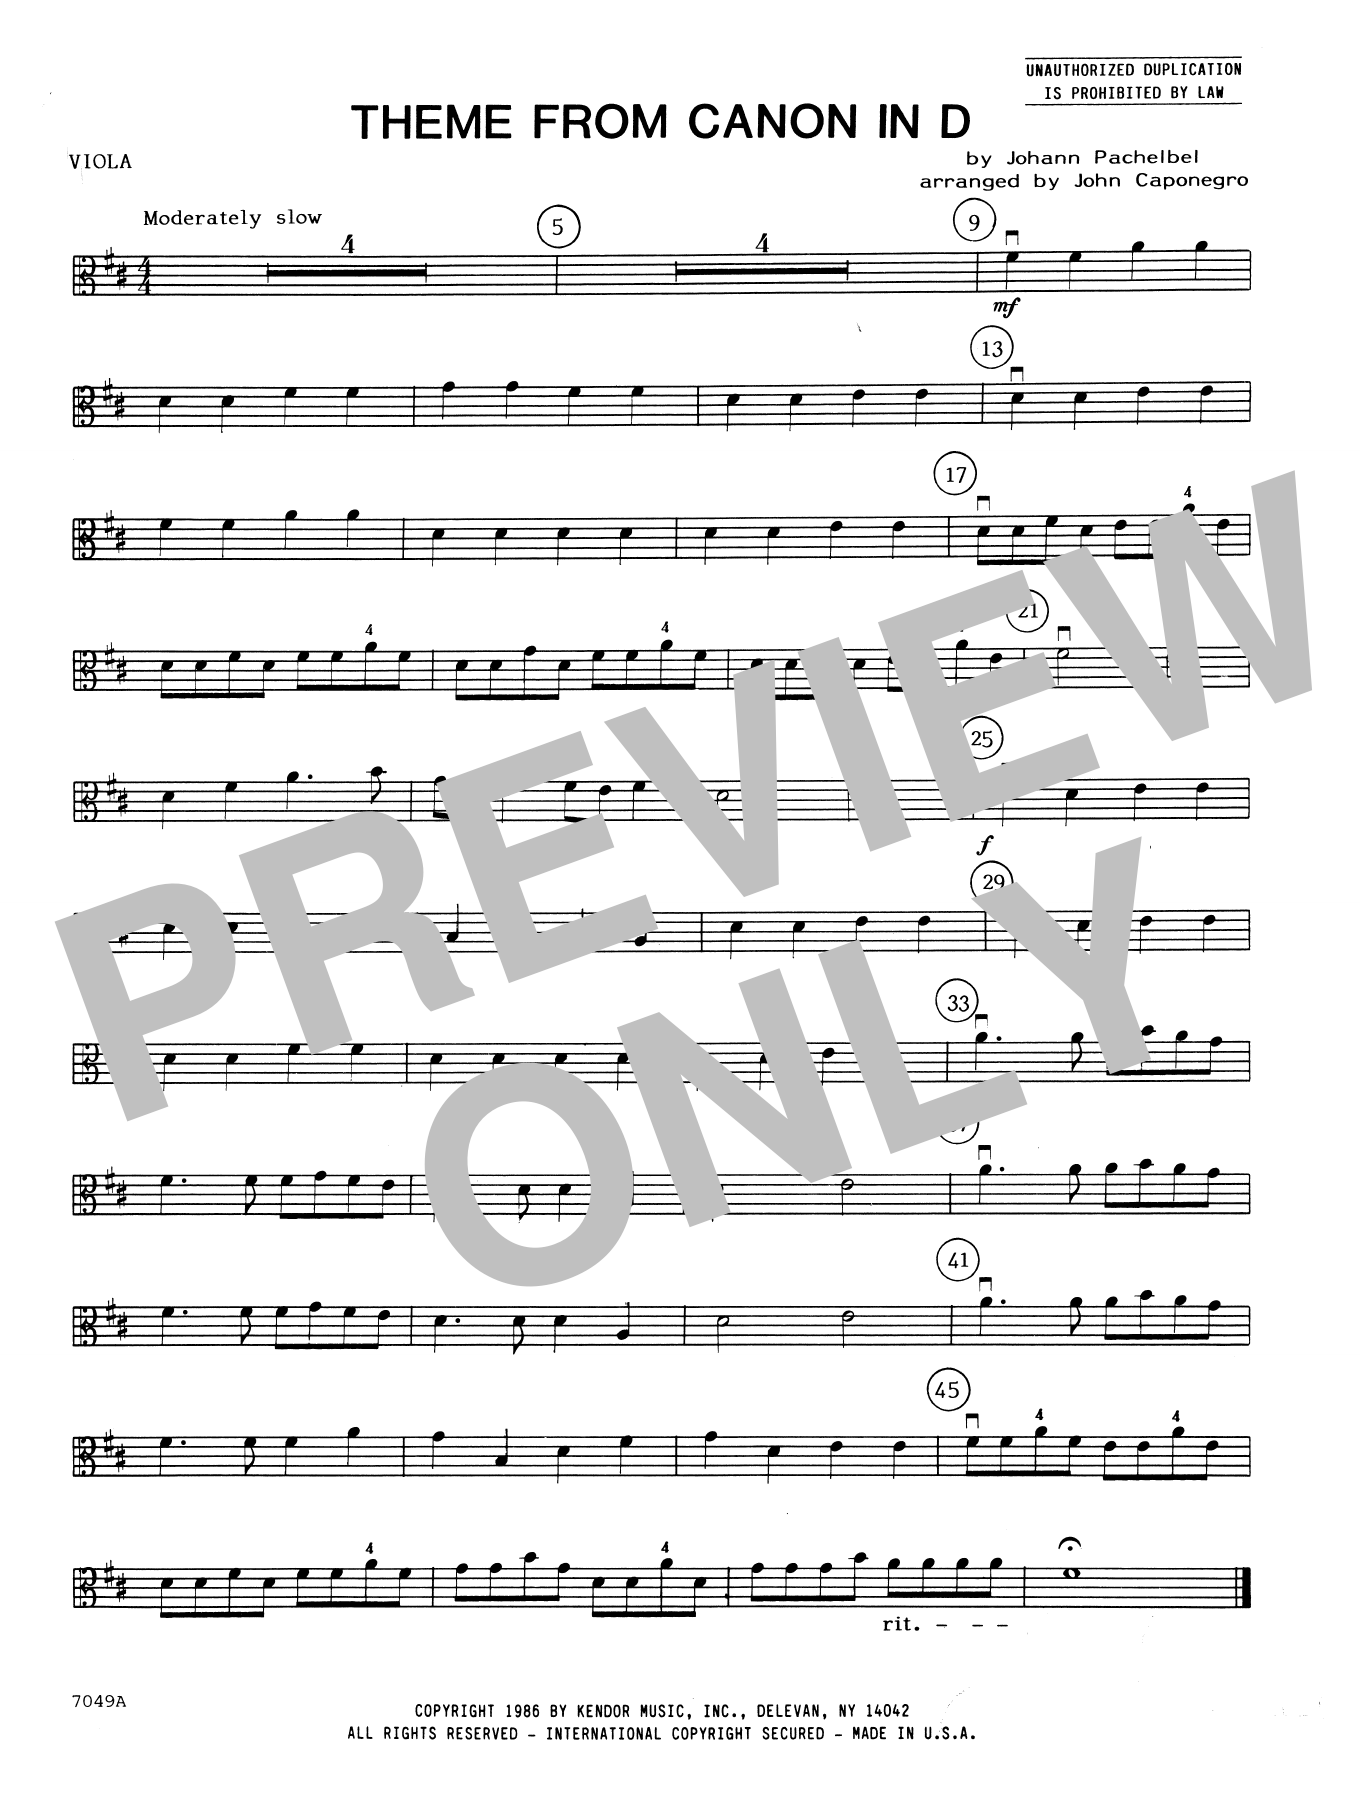 John Caponegro Theme From Canon In D - Viola sheet music notes and chords. Download Printable PDF.